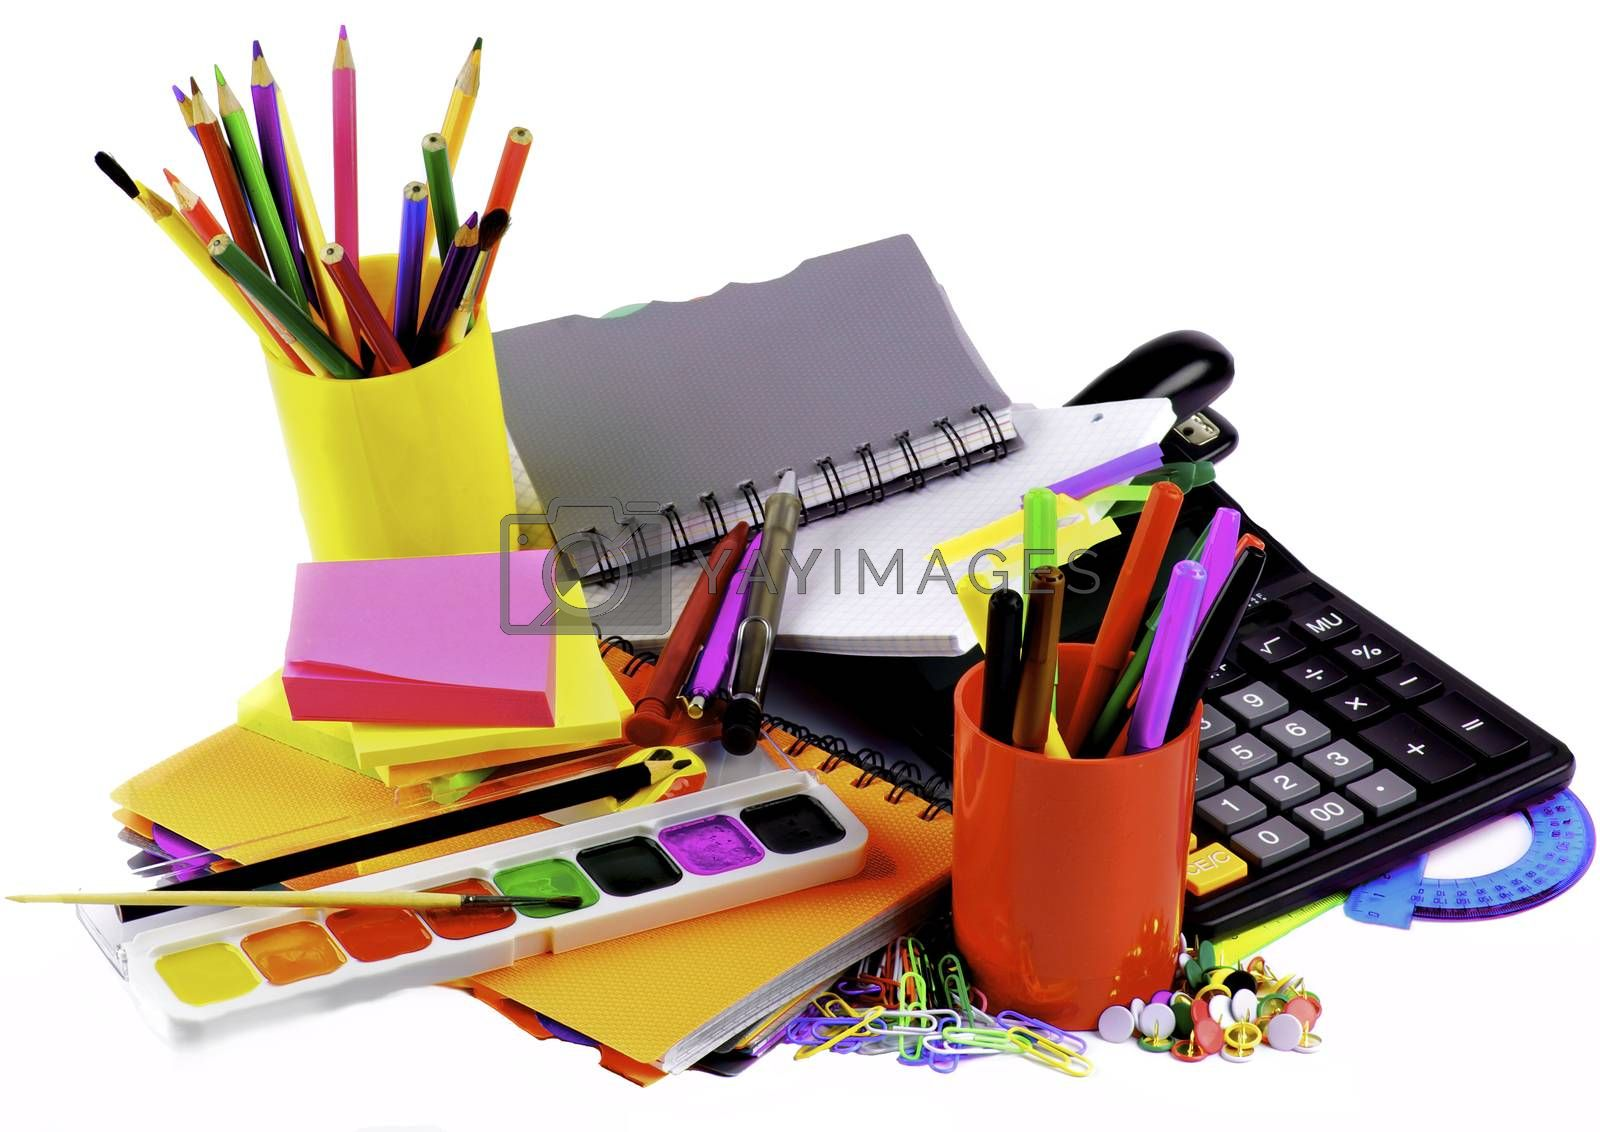 School Supplies Concept with Various Colorful Ballpoint Pens, Pencils, Felt Tip Pens, Pencil Sharpener, Watercolor Paints, Paper Clips, Calculator and Sticky Notes closeup on White background